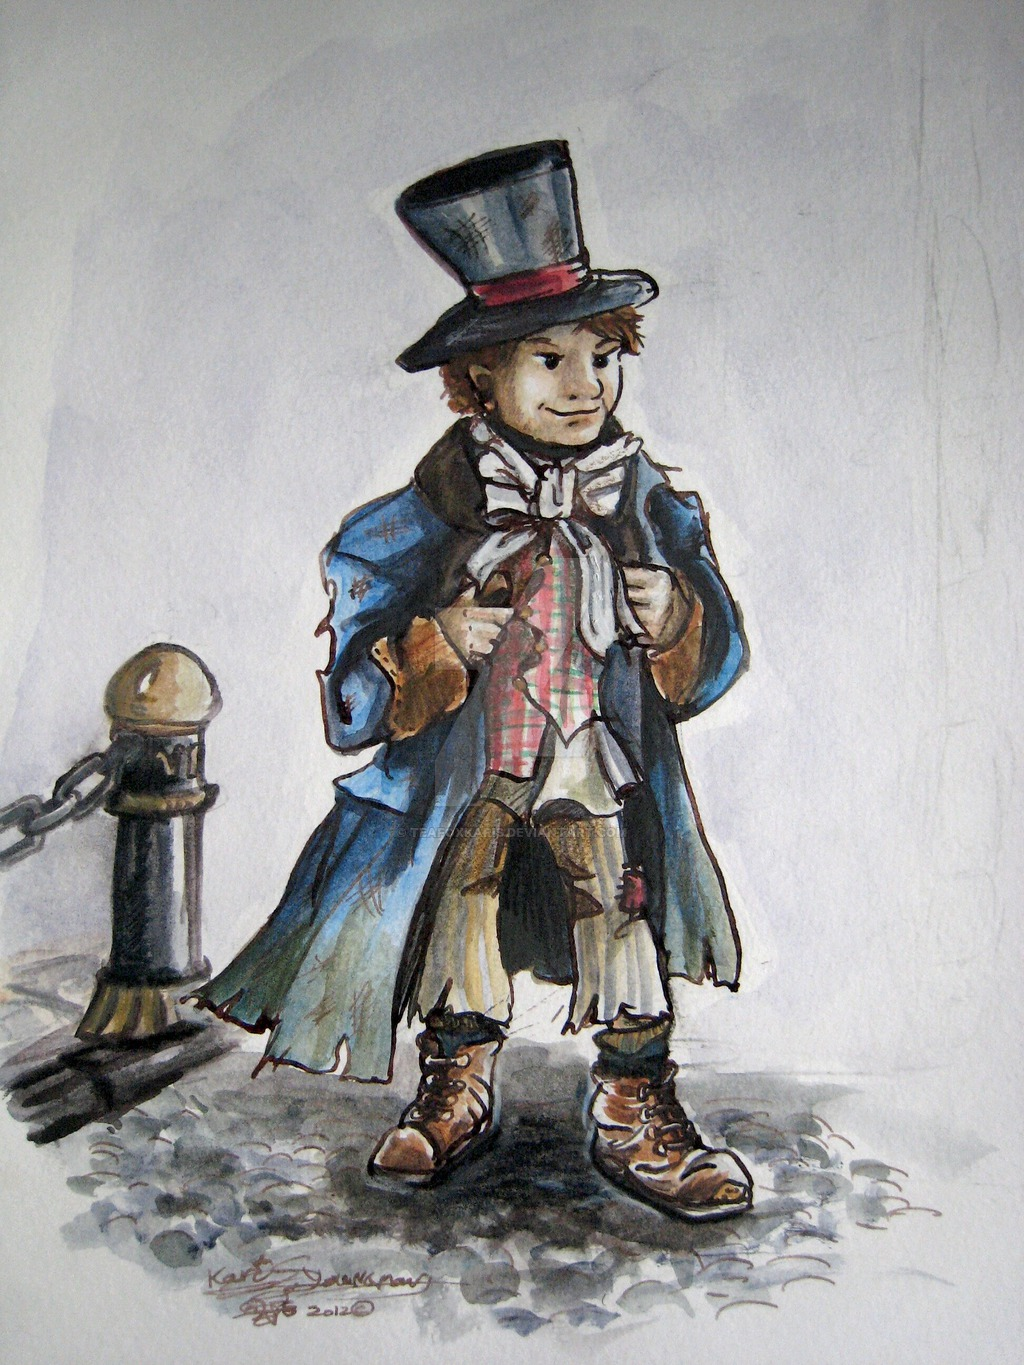 The Artful Dodger from Oliver Twist by TeaFoxKaris on 1024x1365